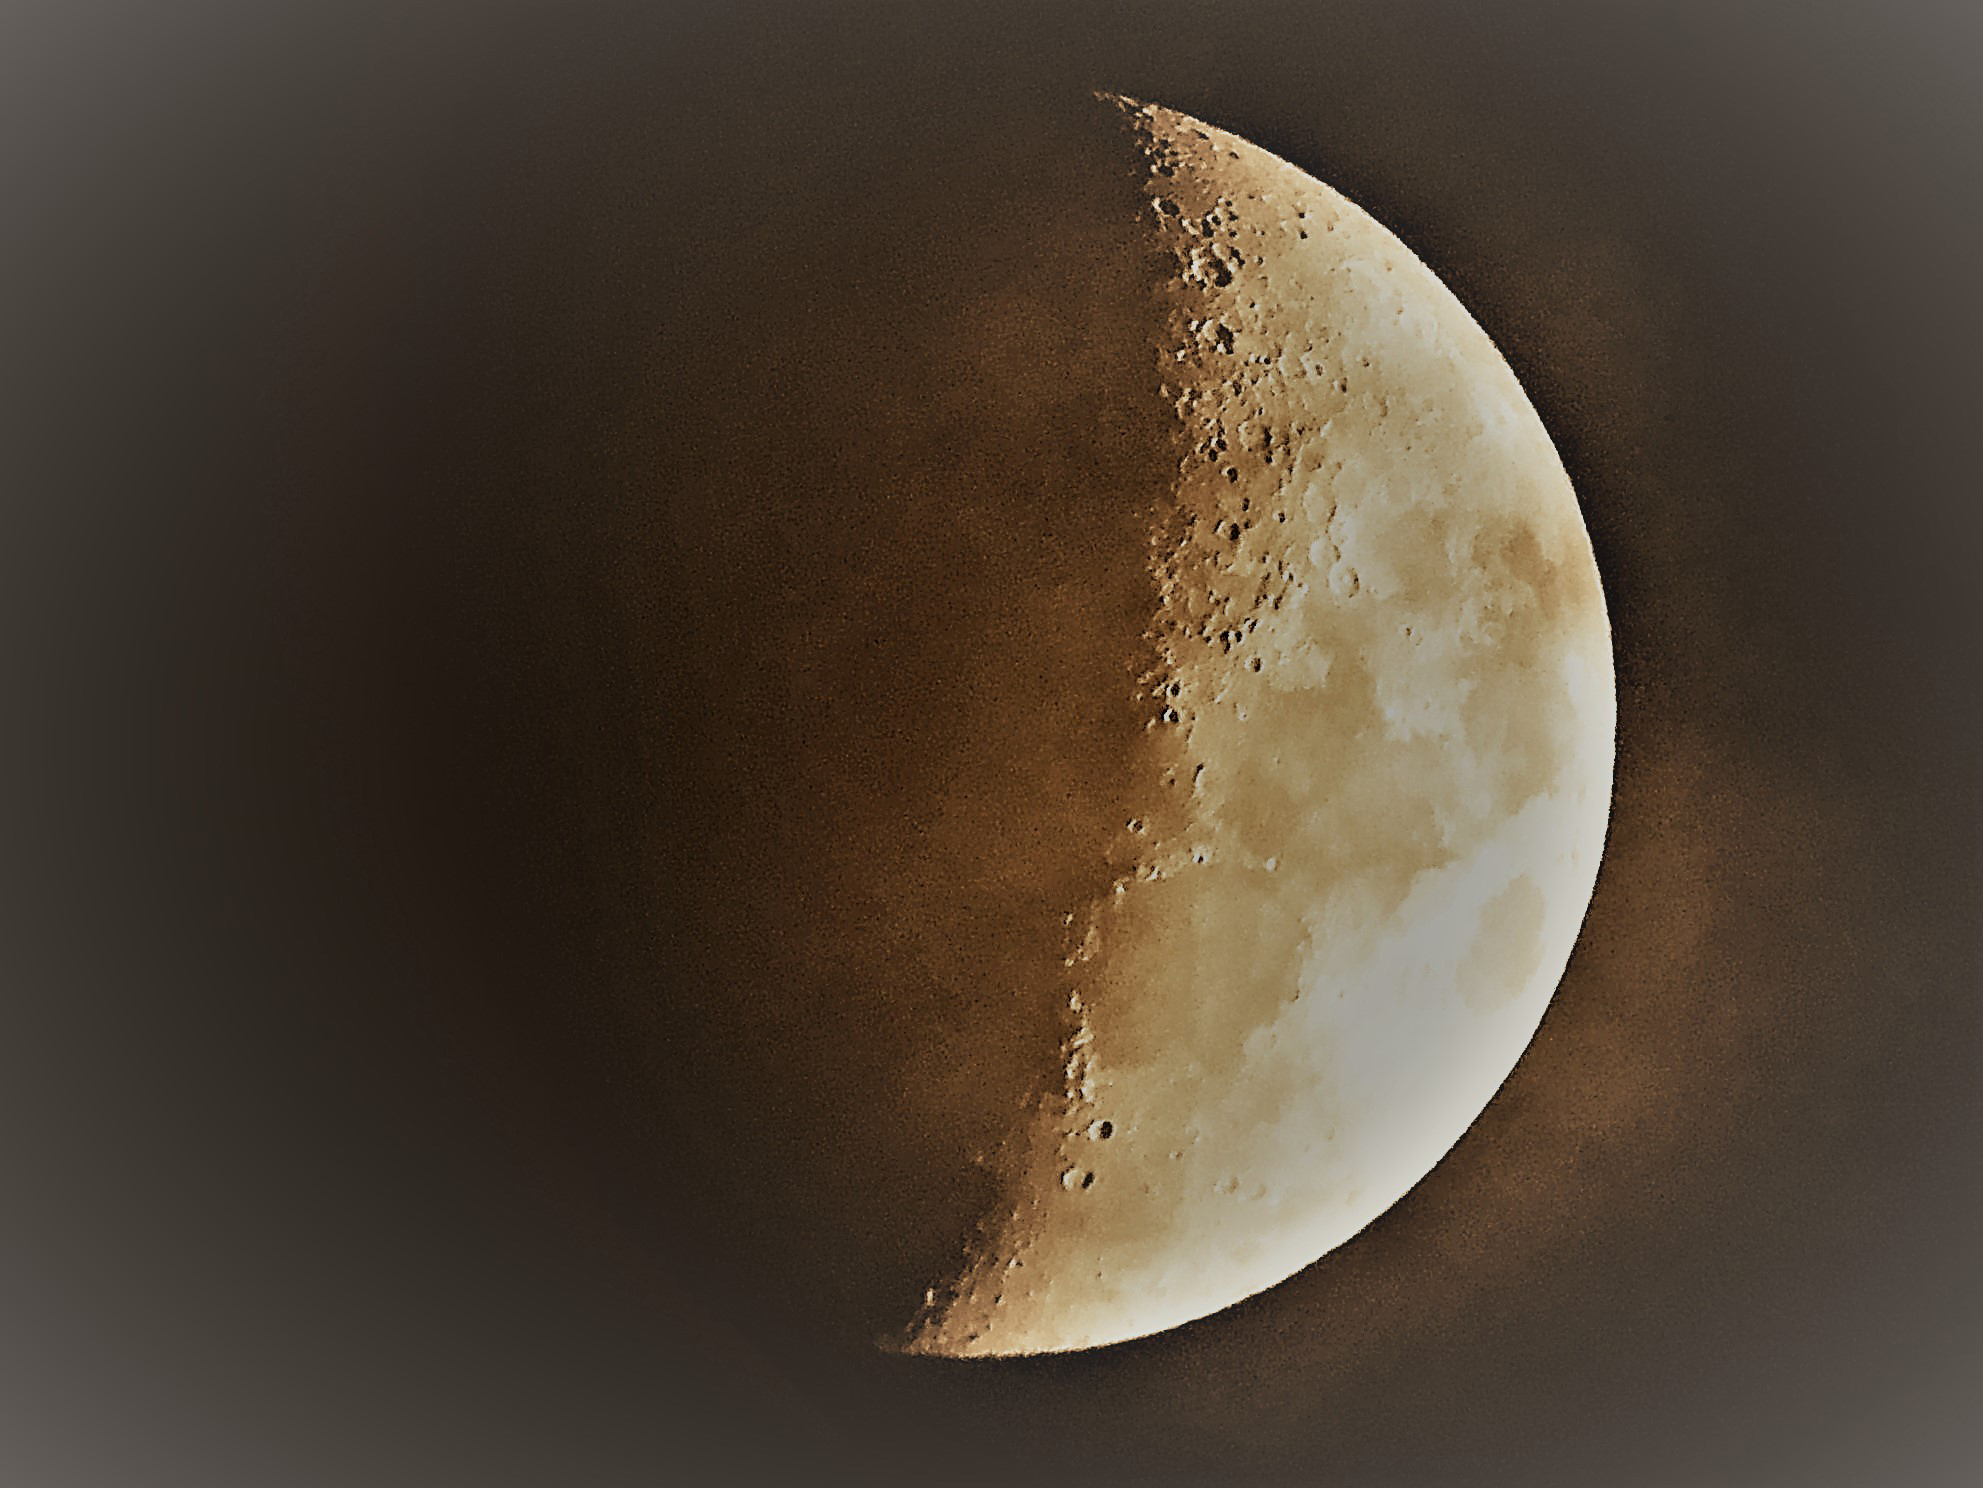 With help from his grandfather, and a new telescope he got for his birthday, photographer Casper Kentish took this photo with an iPad.